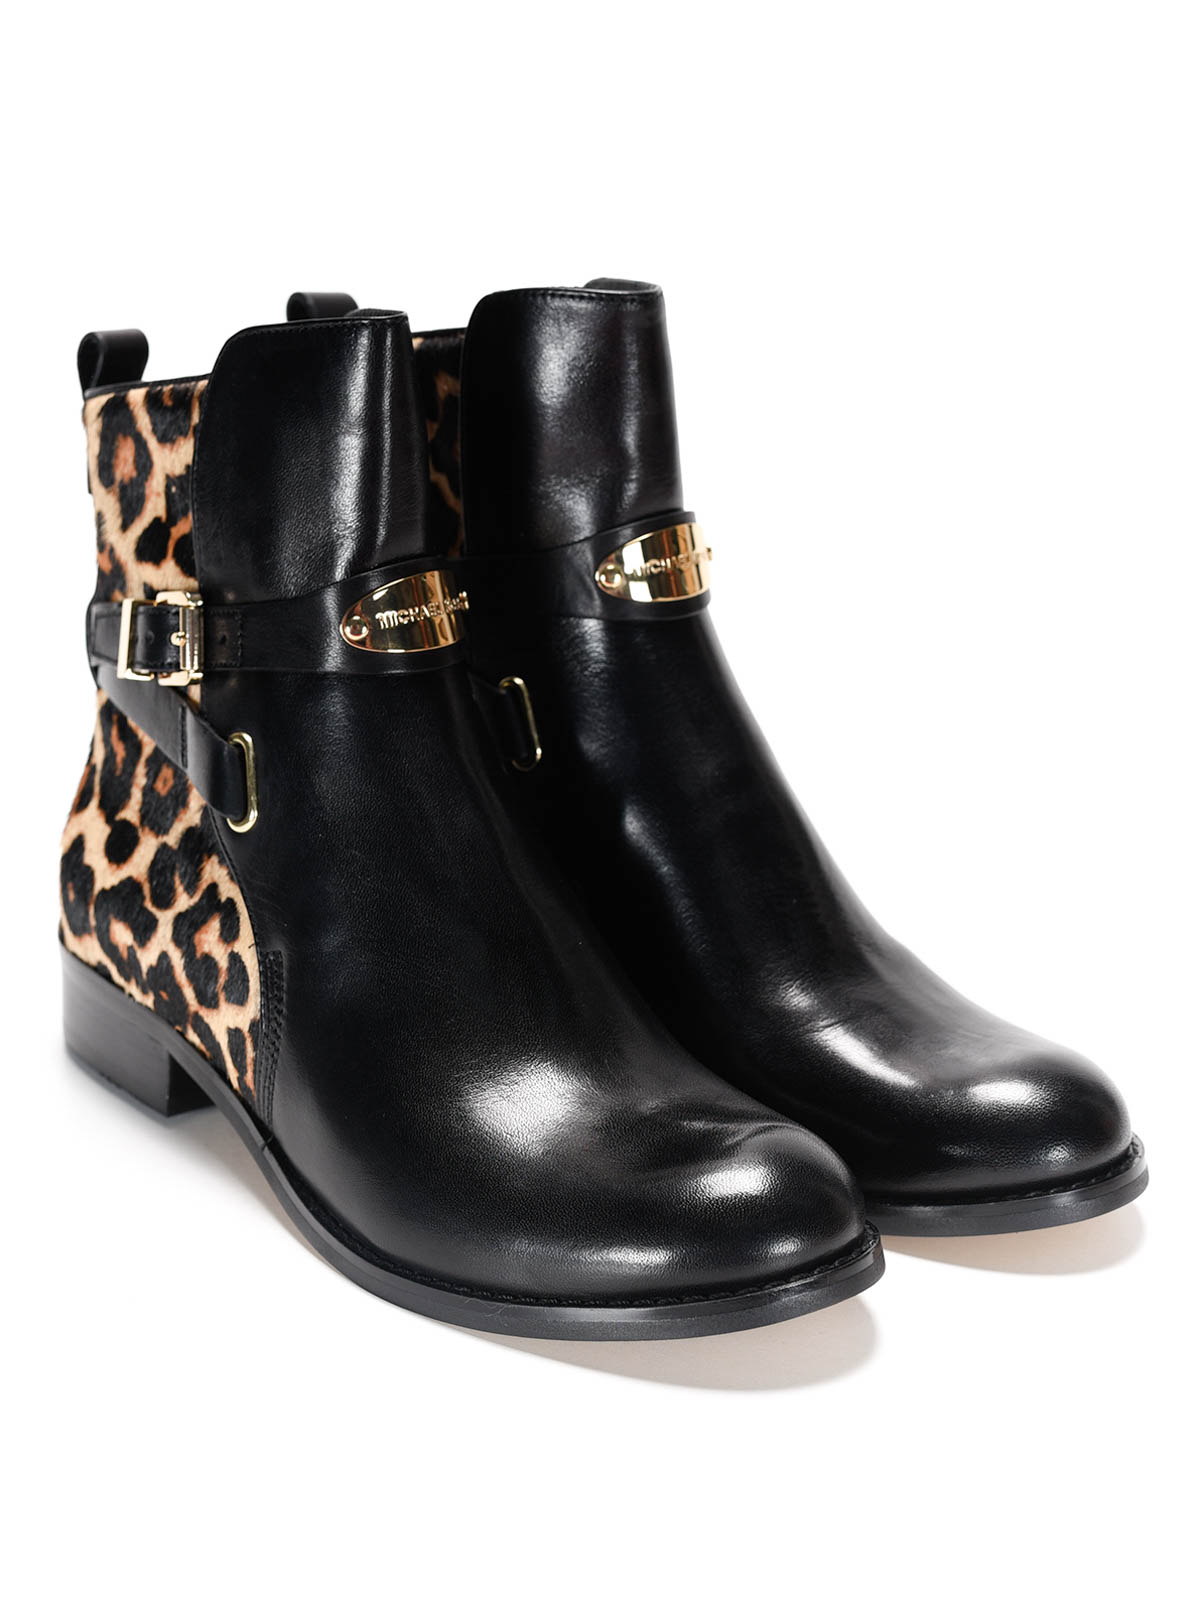 arley leather ankle boots by michael kors ankle boots ikrix. Black Bedroom Furniture Sets. Home Design Ideas